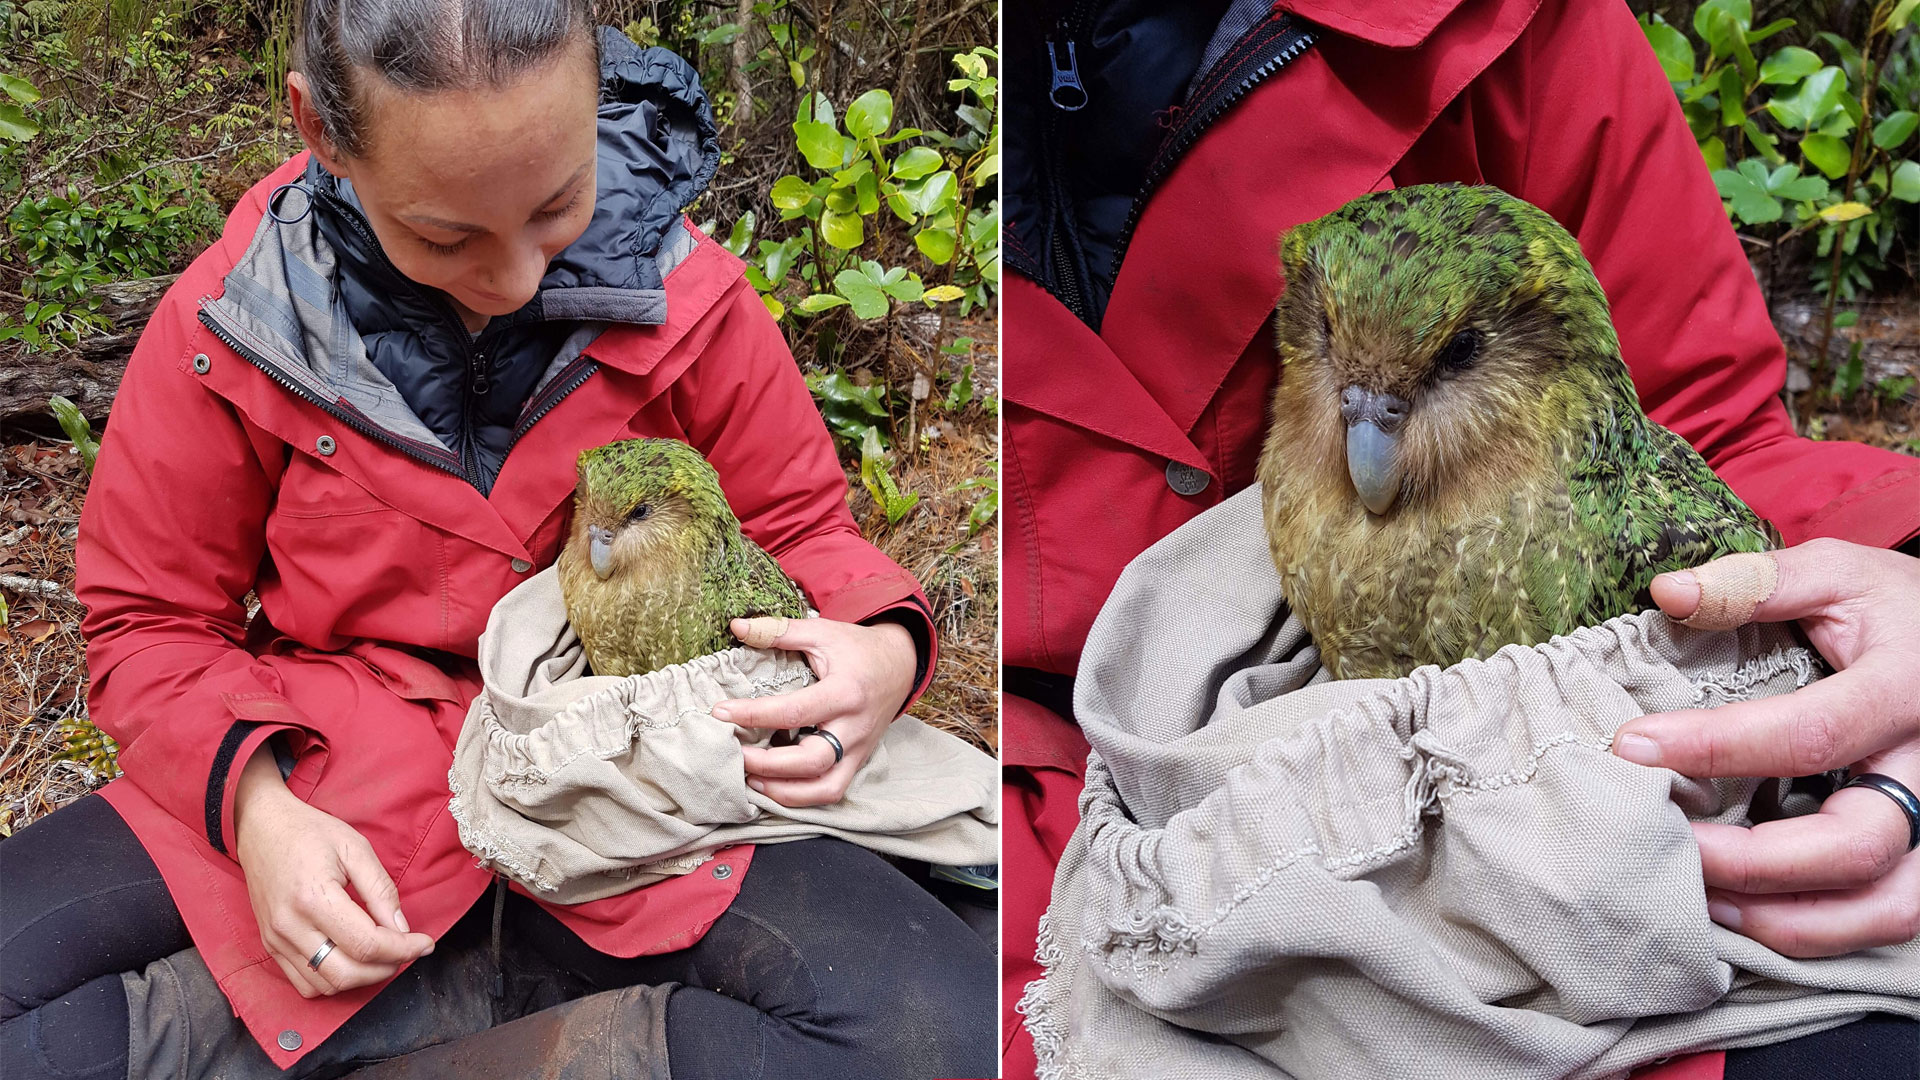 https://rfacdn.nz/zoo/assets/media/jasmine-with-kakapo-gallery-1.jpg